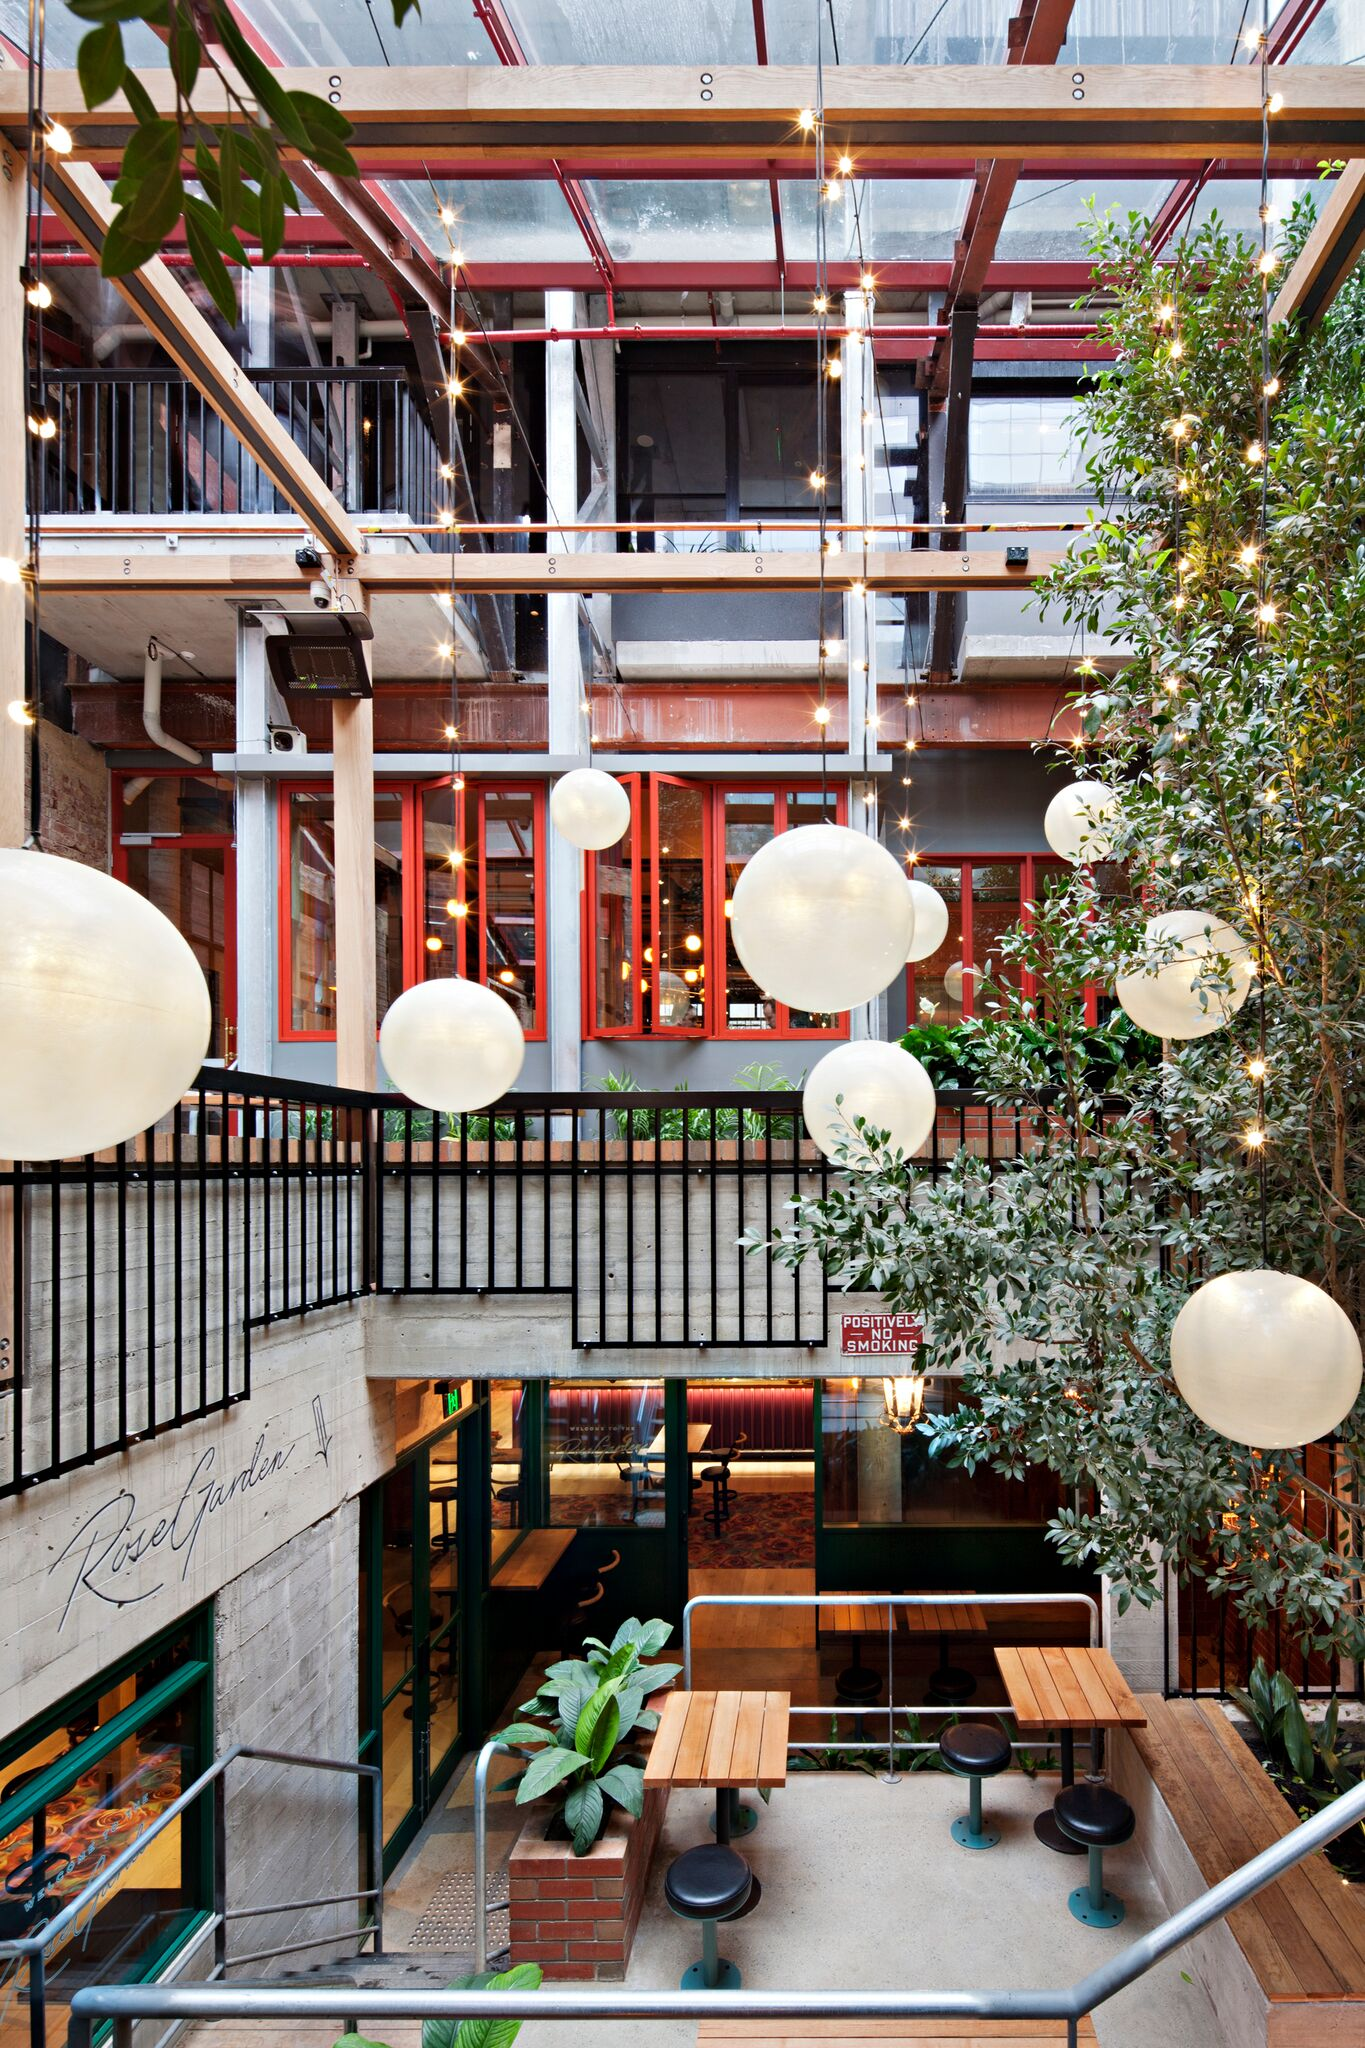 Flinders Lane - Techne Architects - Australian Architecture and Interior Design - Articles & News - The Local Project - Image 8